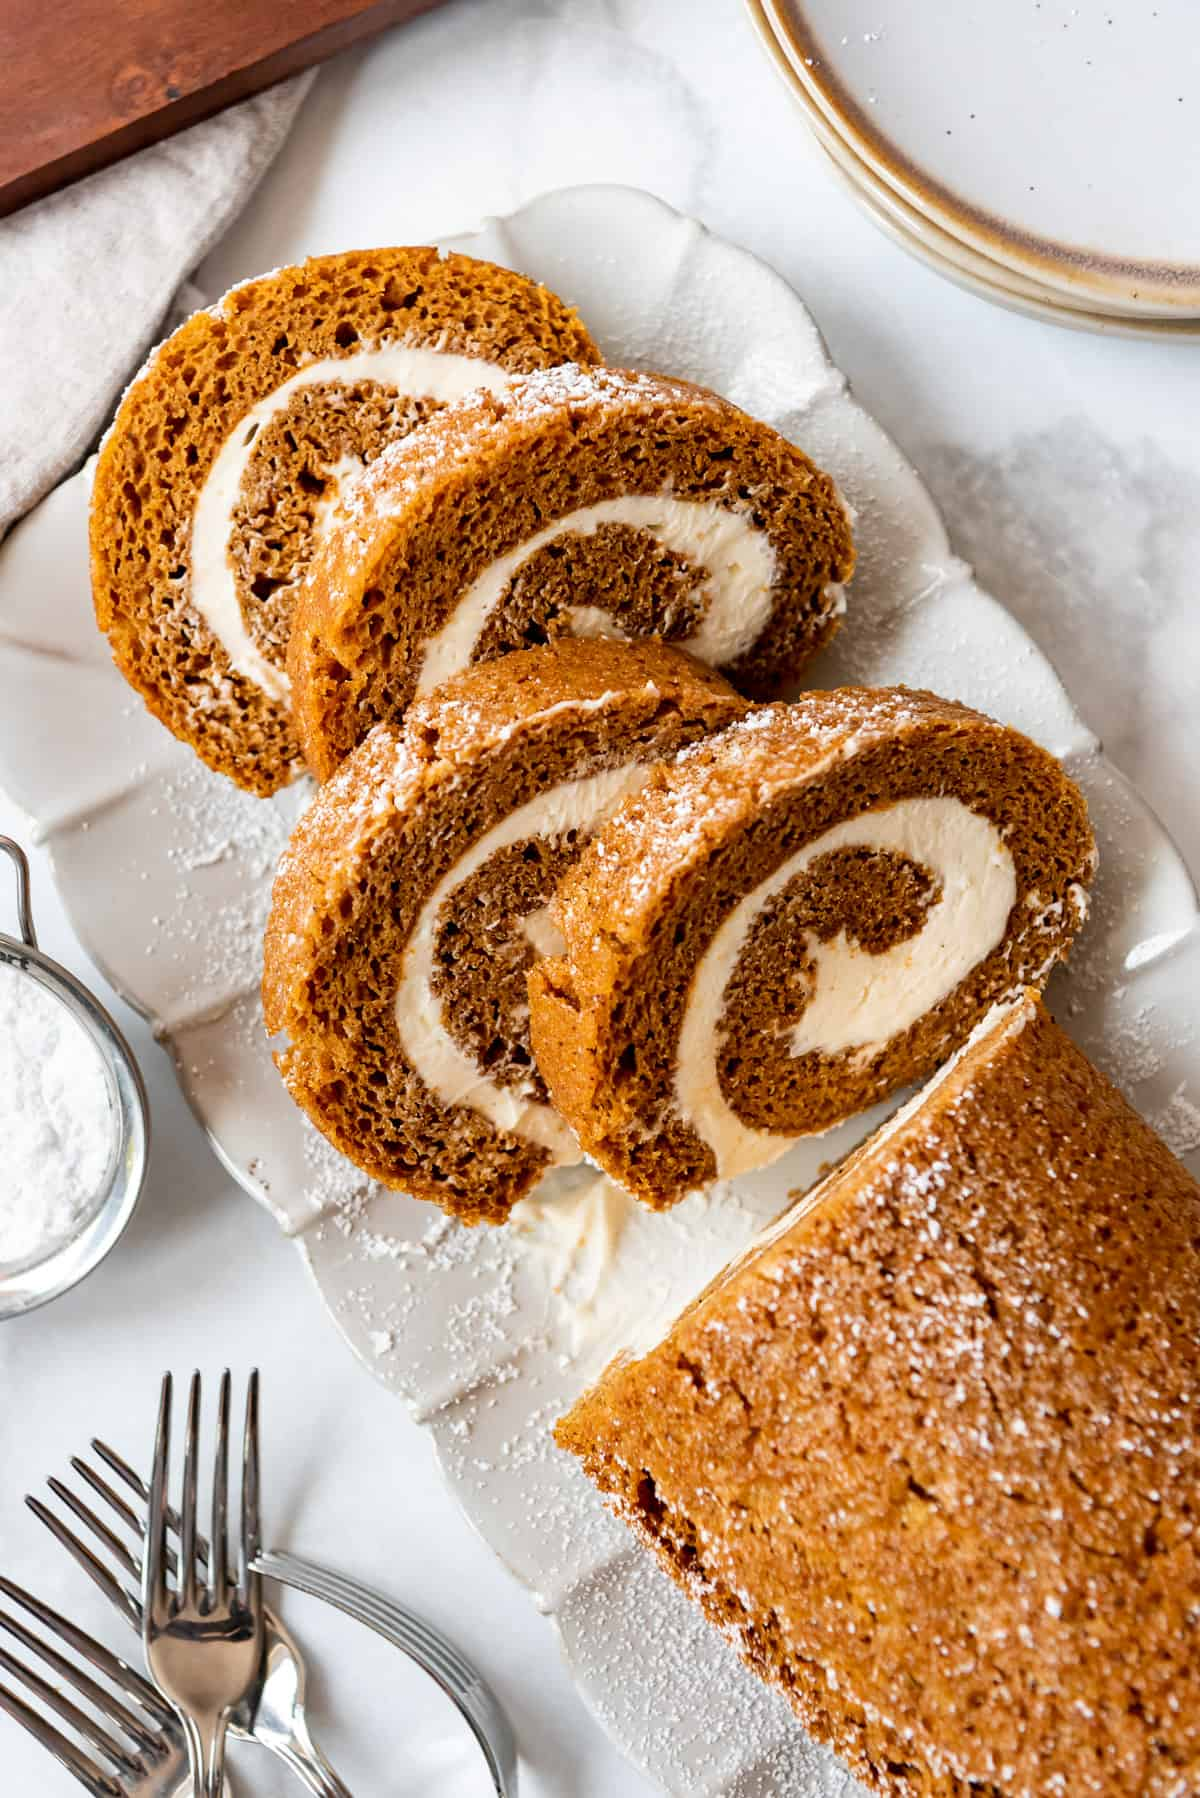 slices of pumpkin roll with cream cheese filling on a decorative plate.